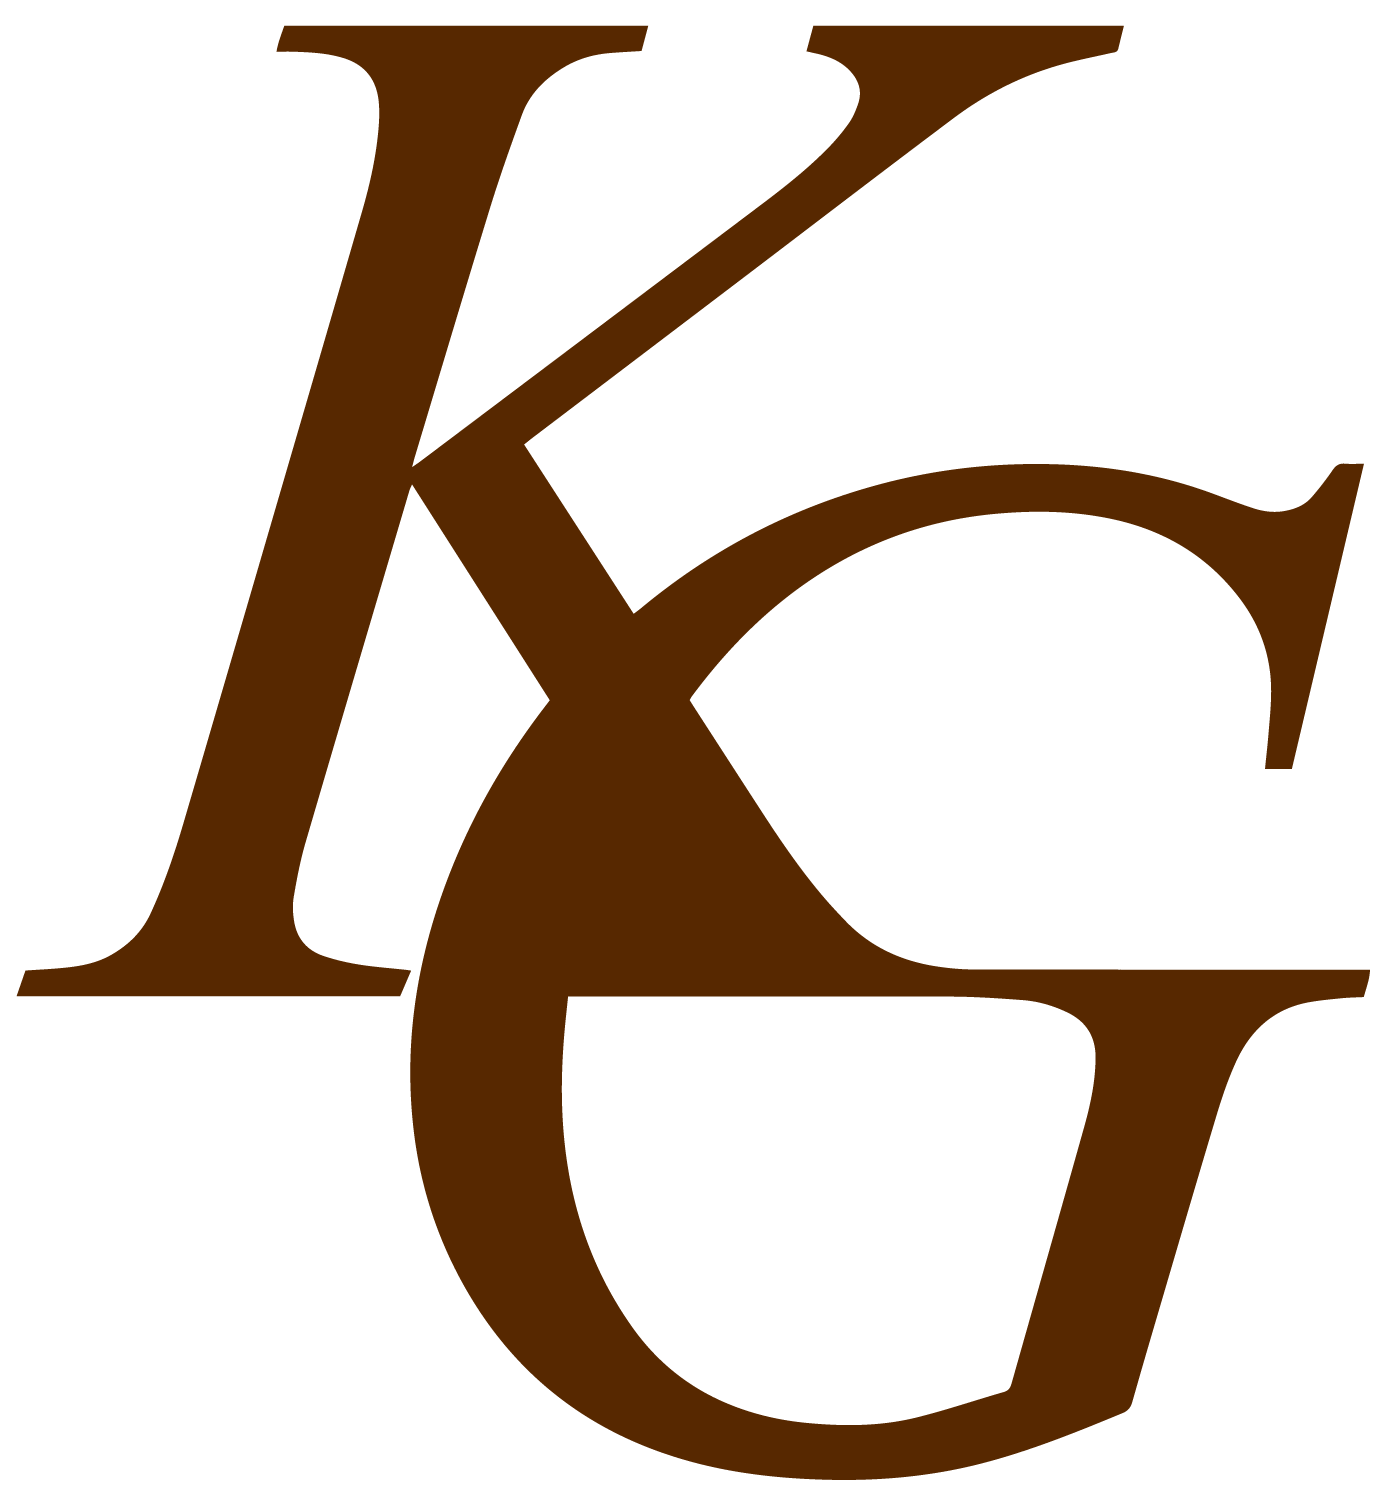 The kauffman group inc. Tired clipart laborer